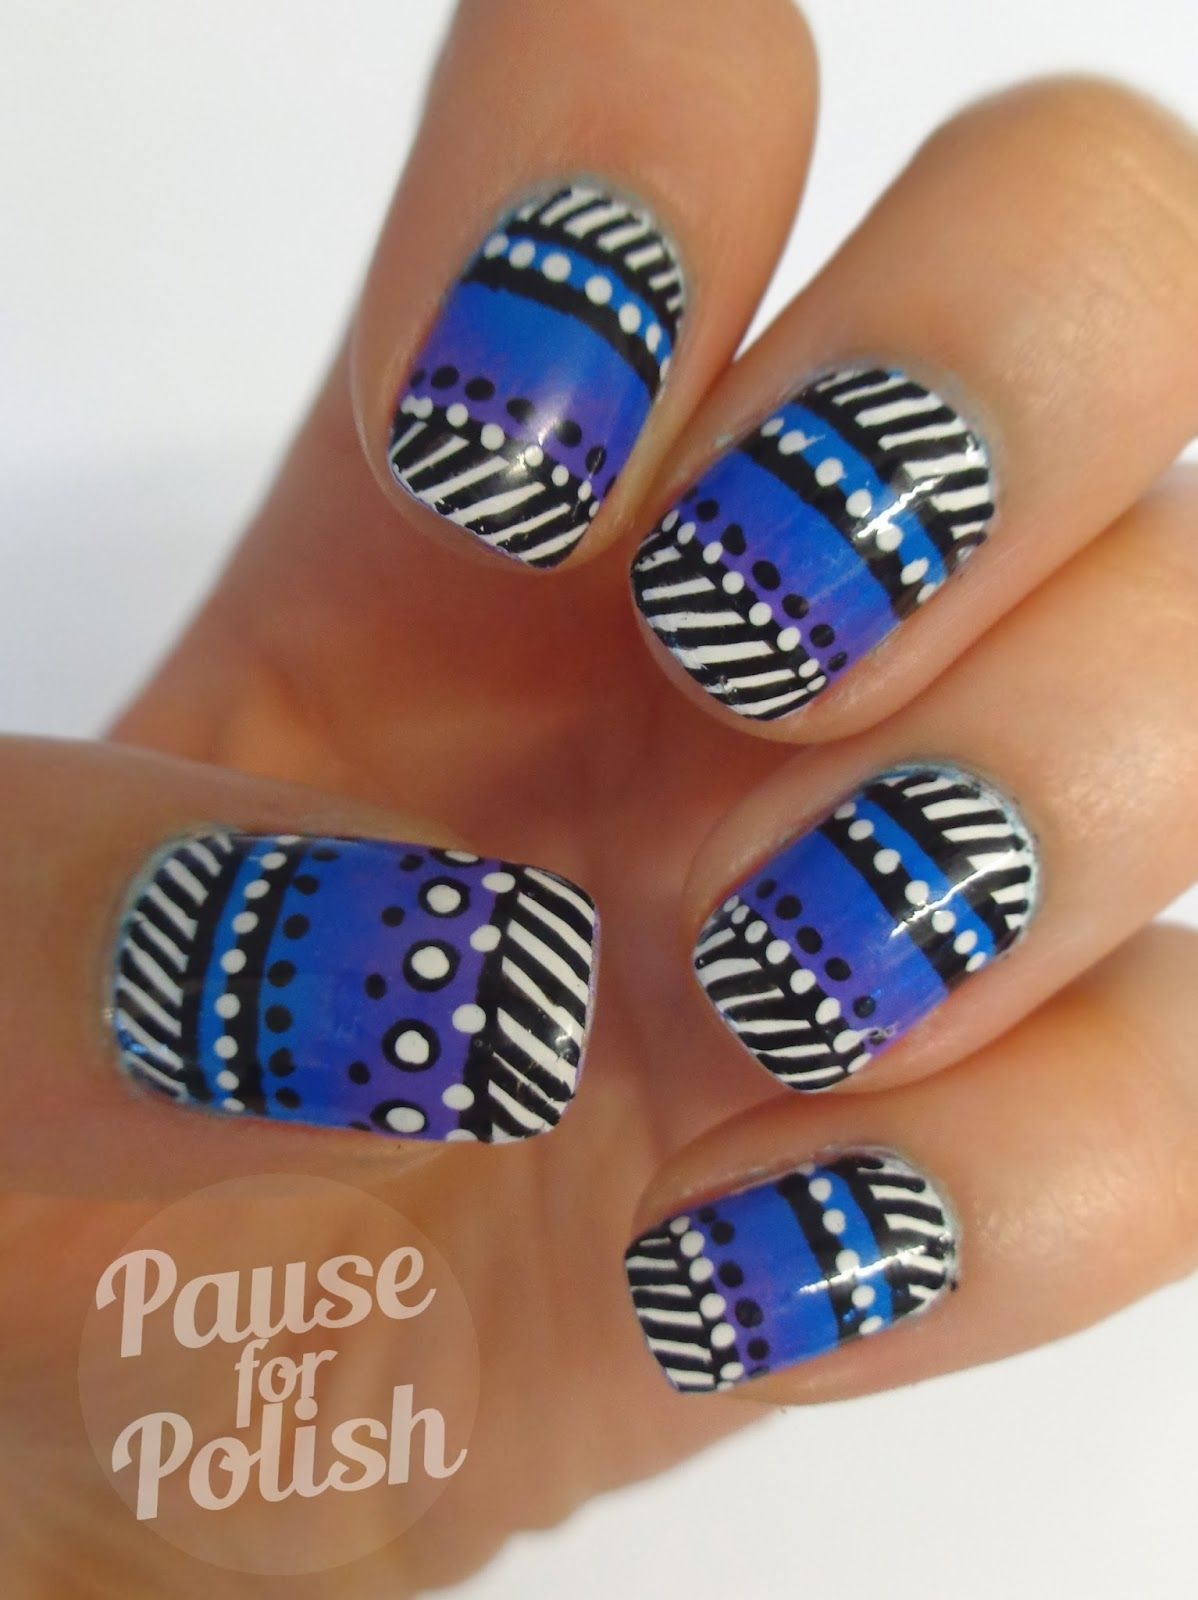 Pause For Polish: Claire\'s Accessories Neon Purple Nail Art! | Nails ...